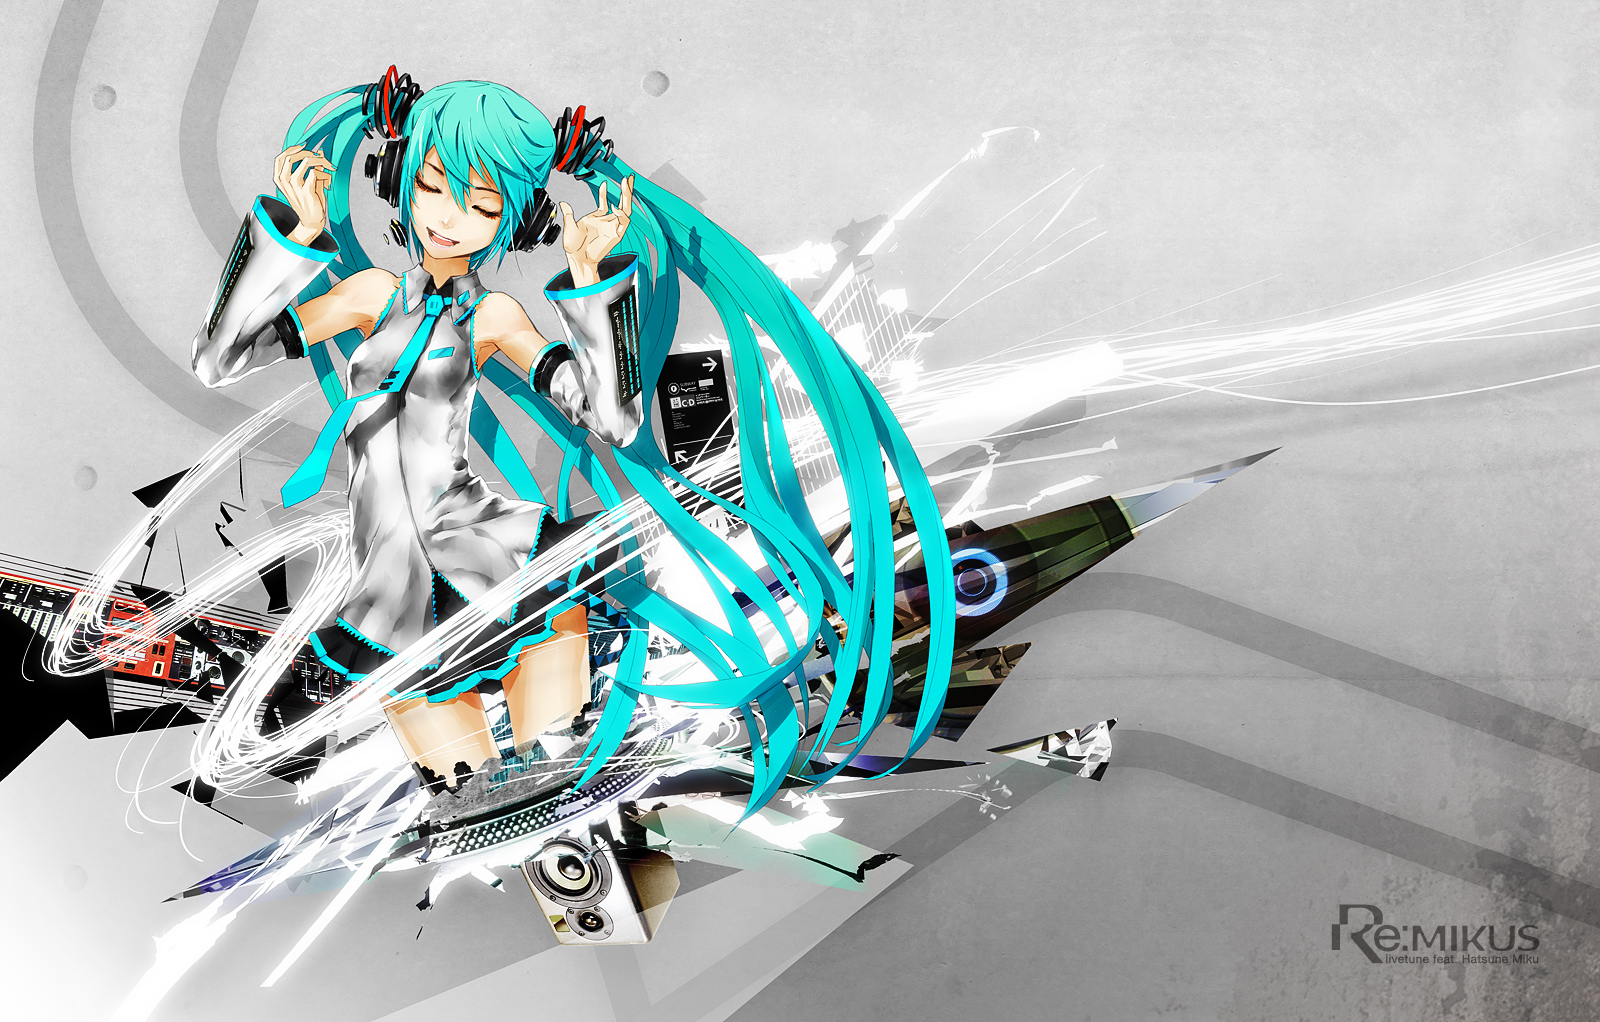 Re_MIKUS_by_redjuice999.jpg